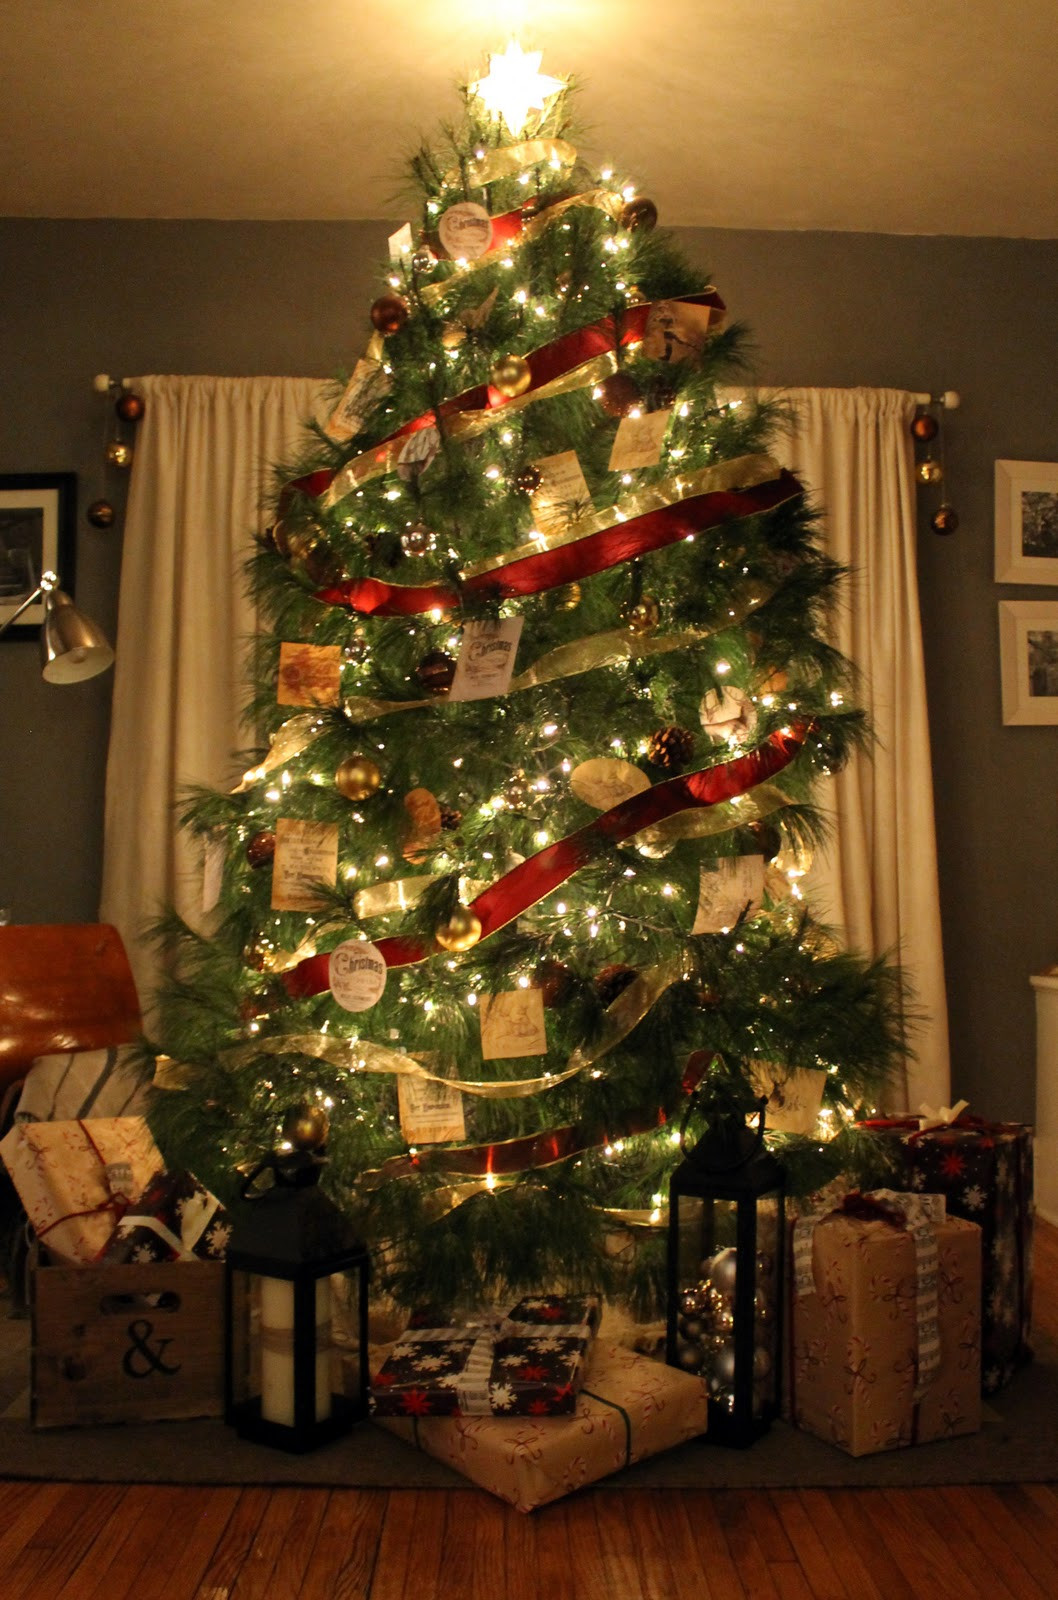 Christmas Decoration Ideas Fresh Best Christmas Decoration Ideas Project 4 Gallery Of Amazing 45 Photos Christmas Decoration Ideas